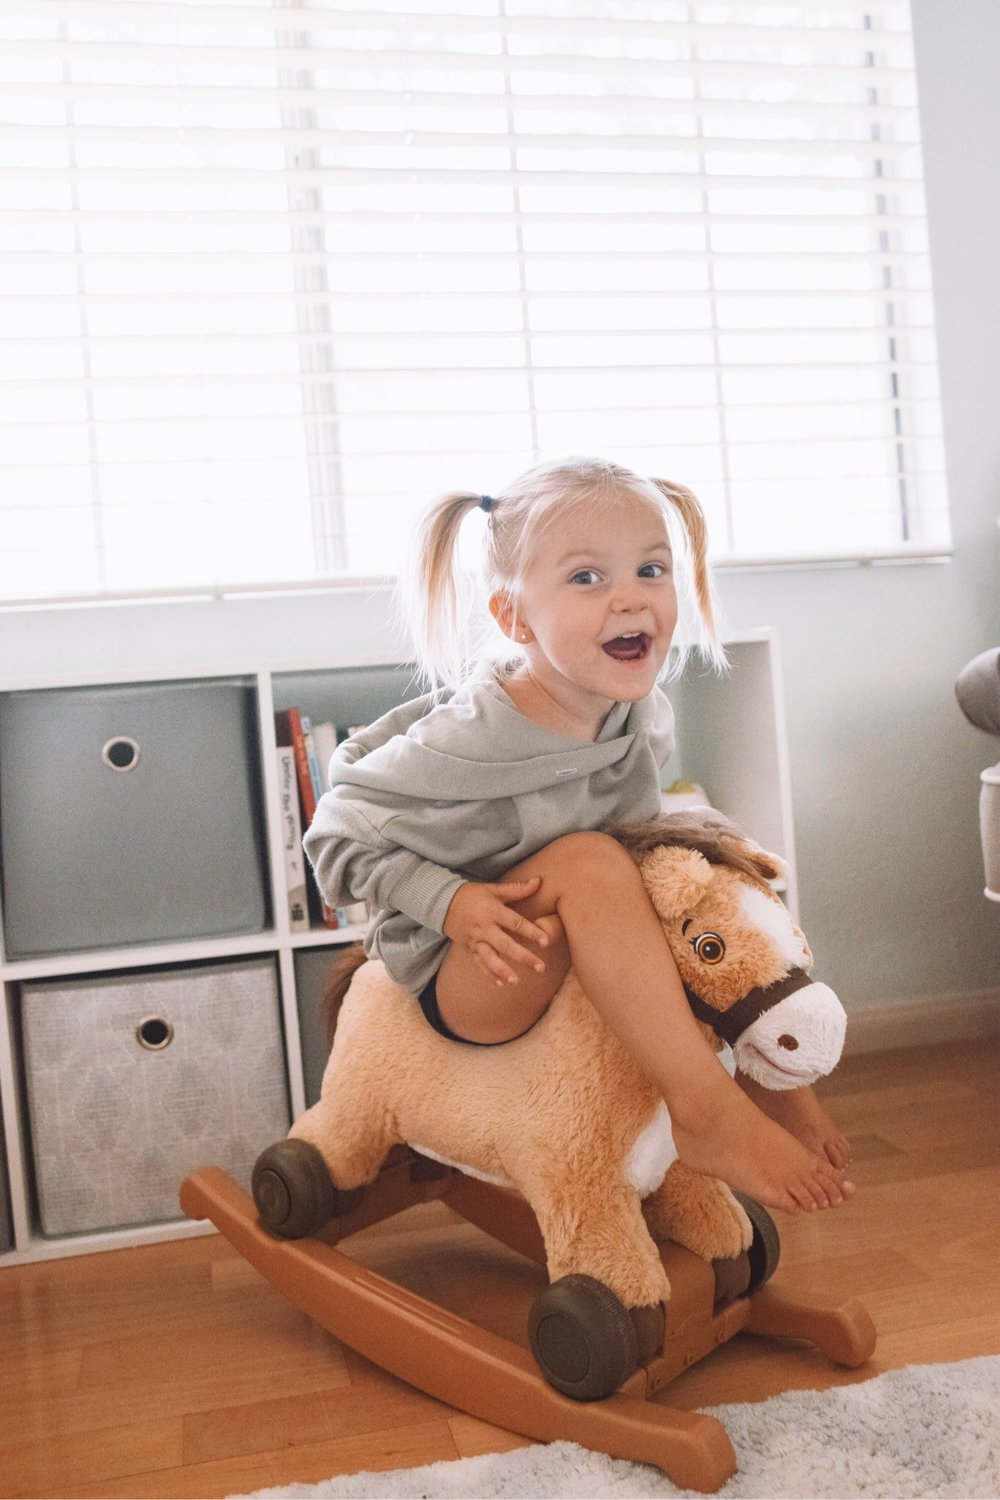 Baby Rocking Horse - Toddler Girl Holiday Christmas Gift Ideas Unique - The Overwhelmed Mommy Blogger